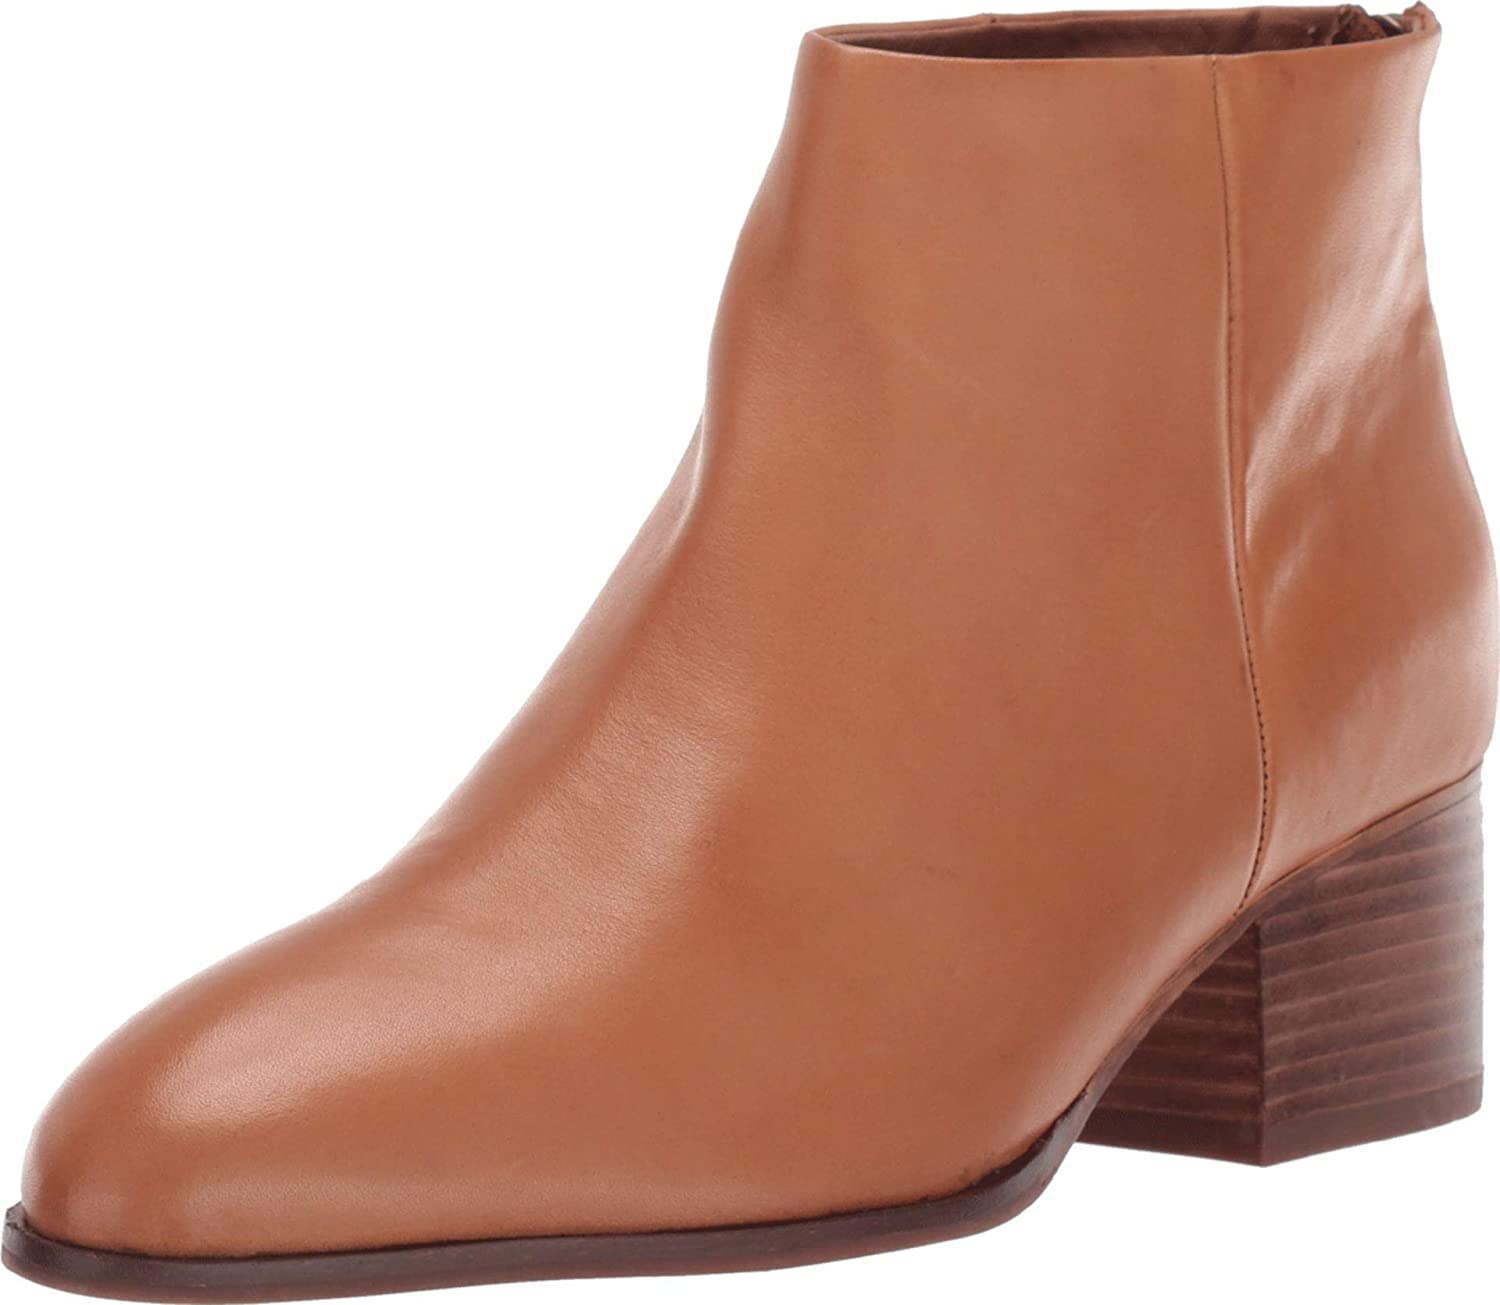 Seychelles Women's Floodplain Ankle Boot